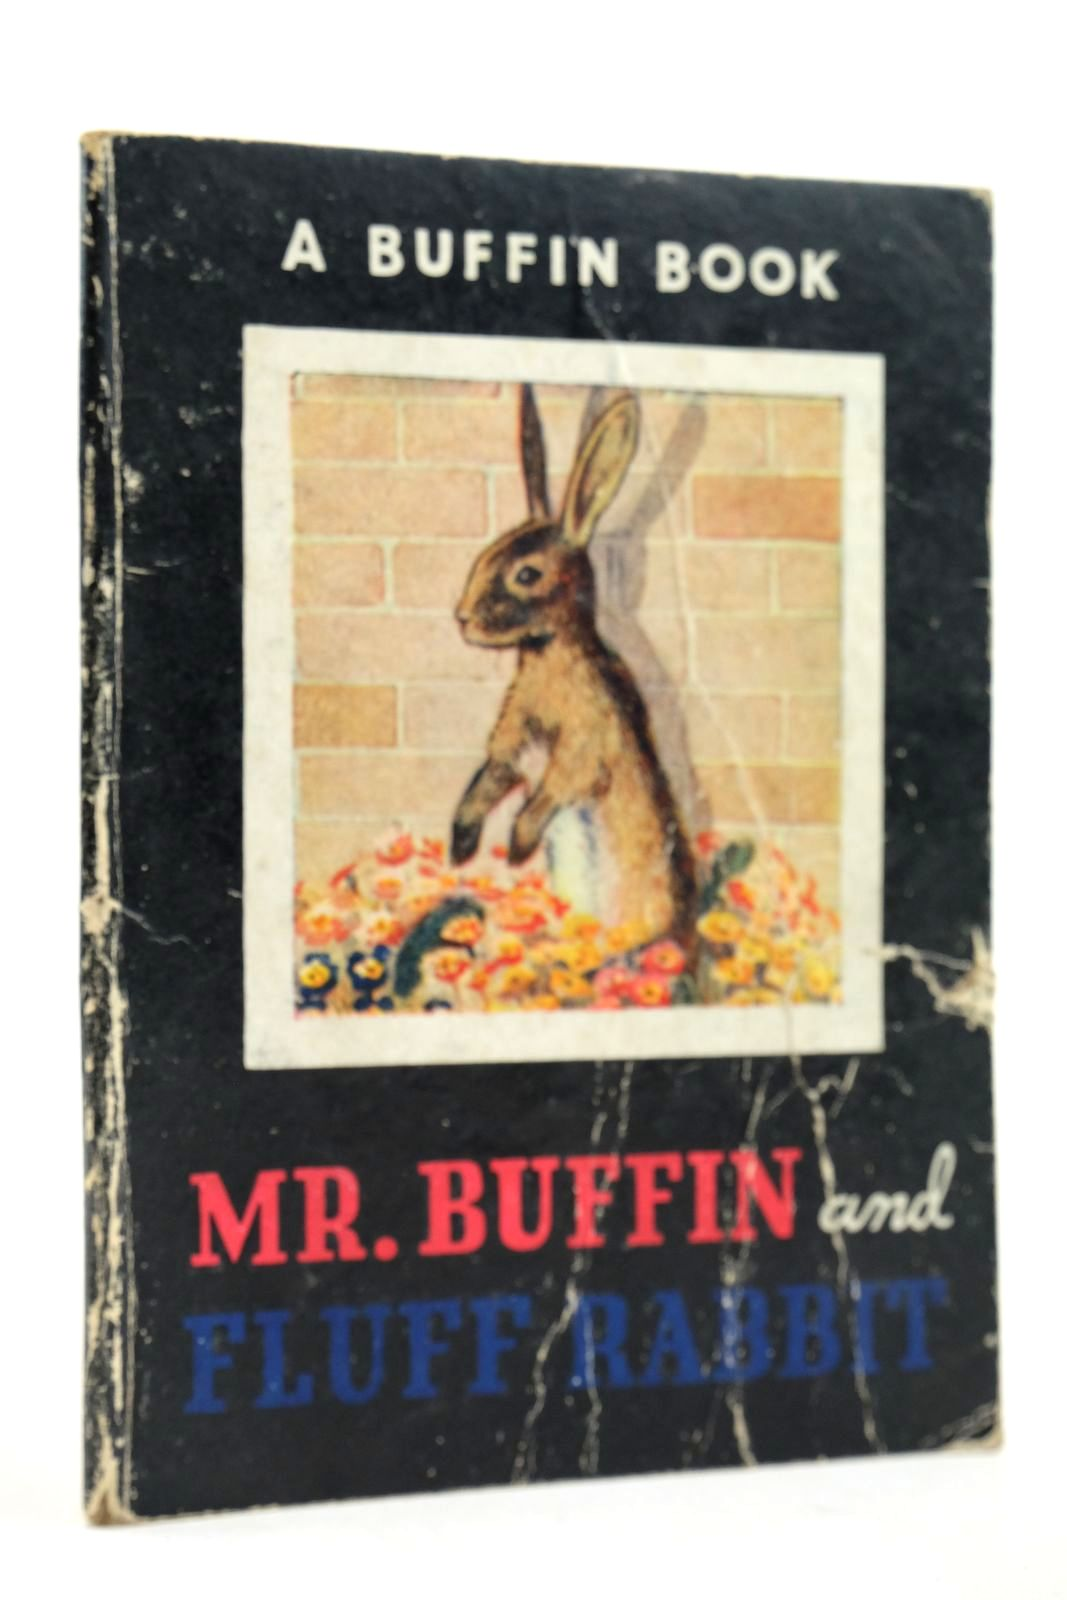 Photo of MR. BUFFIN AND FLUFF RABBIT written by Hartman, Robert illustrated by Hartman, Robert published by Morrison & Gibb Ltd. (STOCK CODE: 2133081)  for sale by Stella & Rose's Books